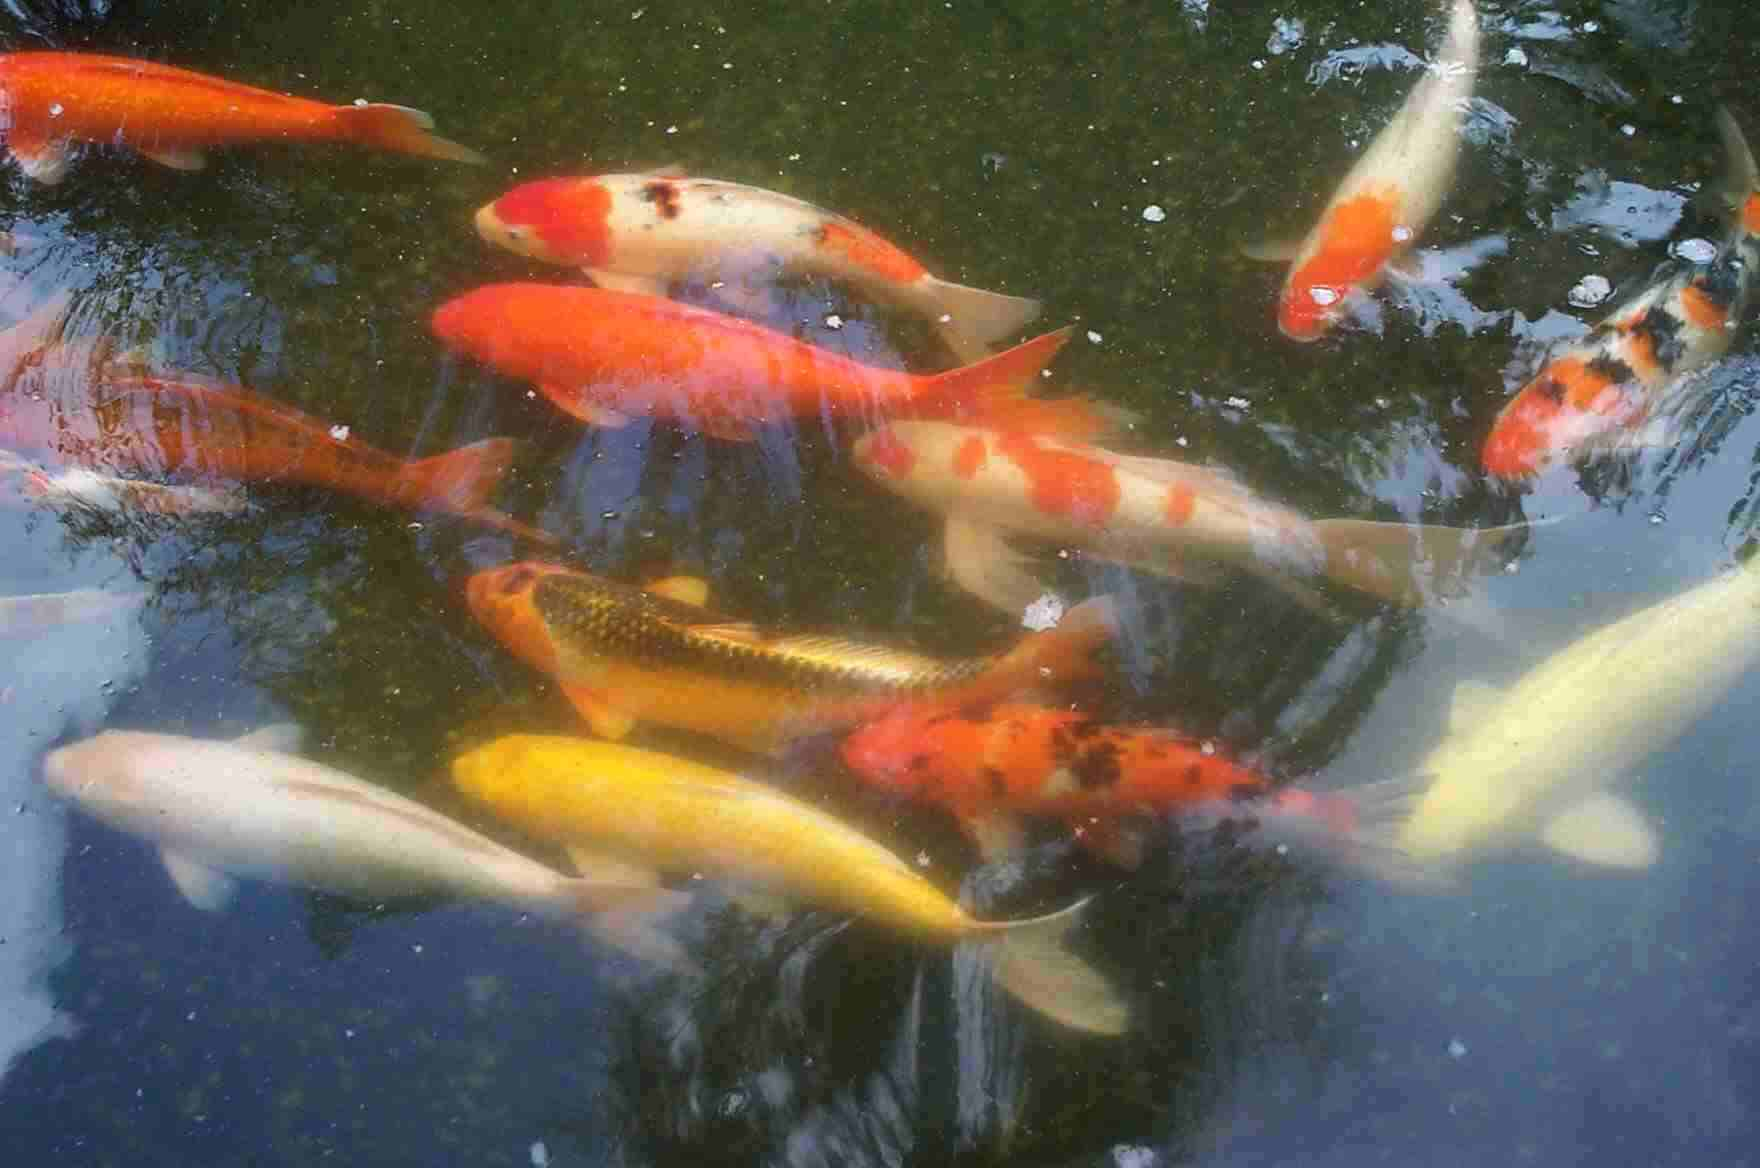 Discus fish for sale 8 amazing giant koi fish for sale for Giant koi for sale